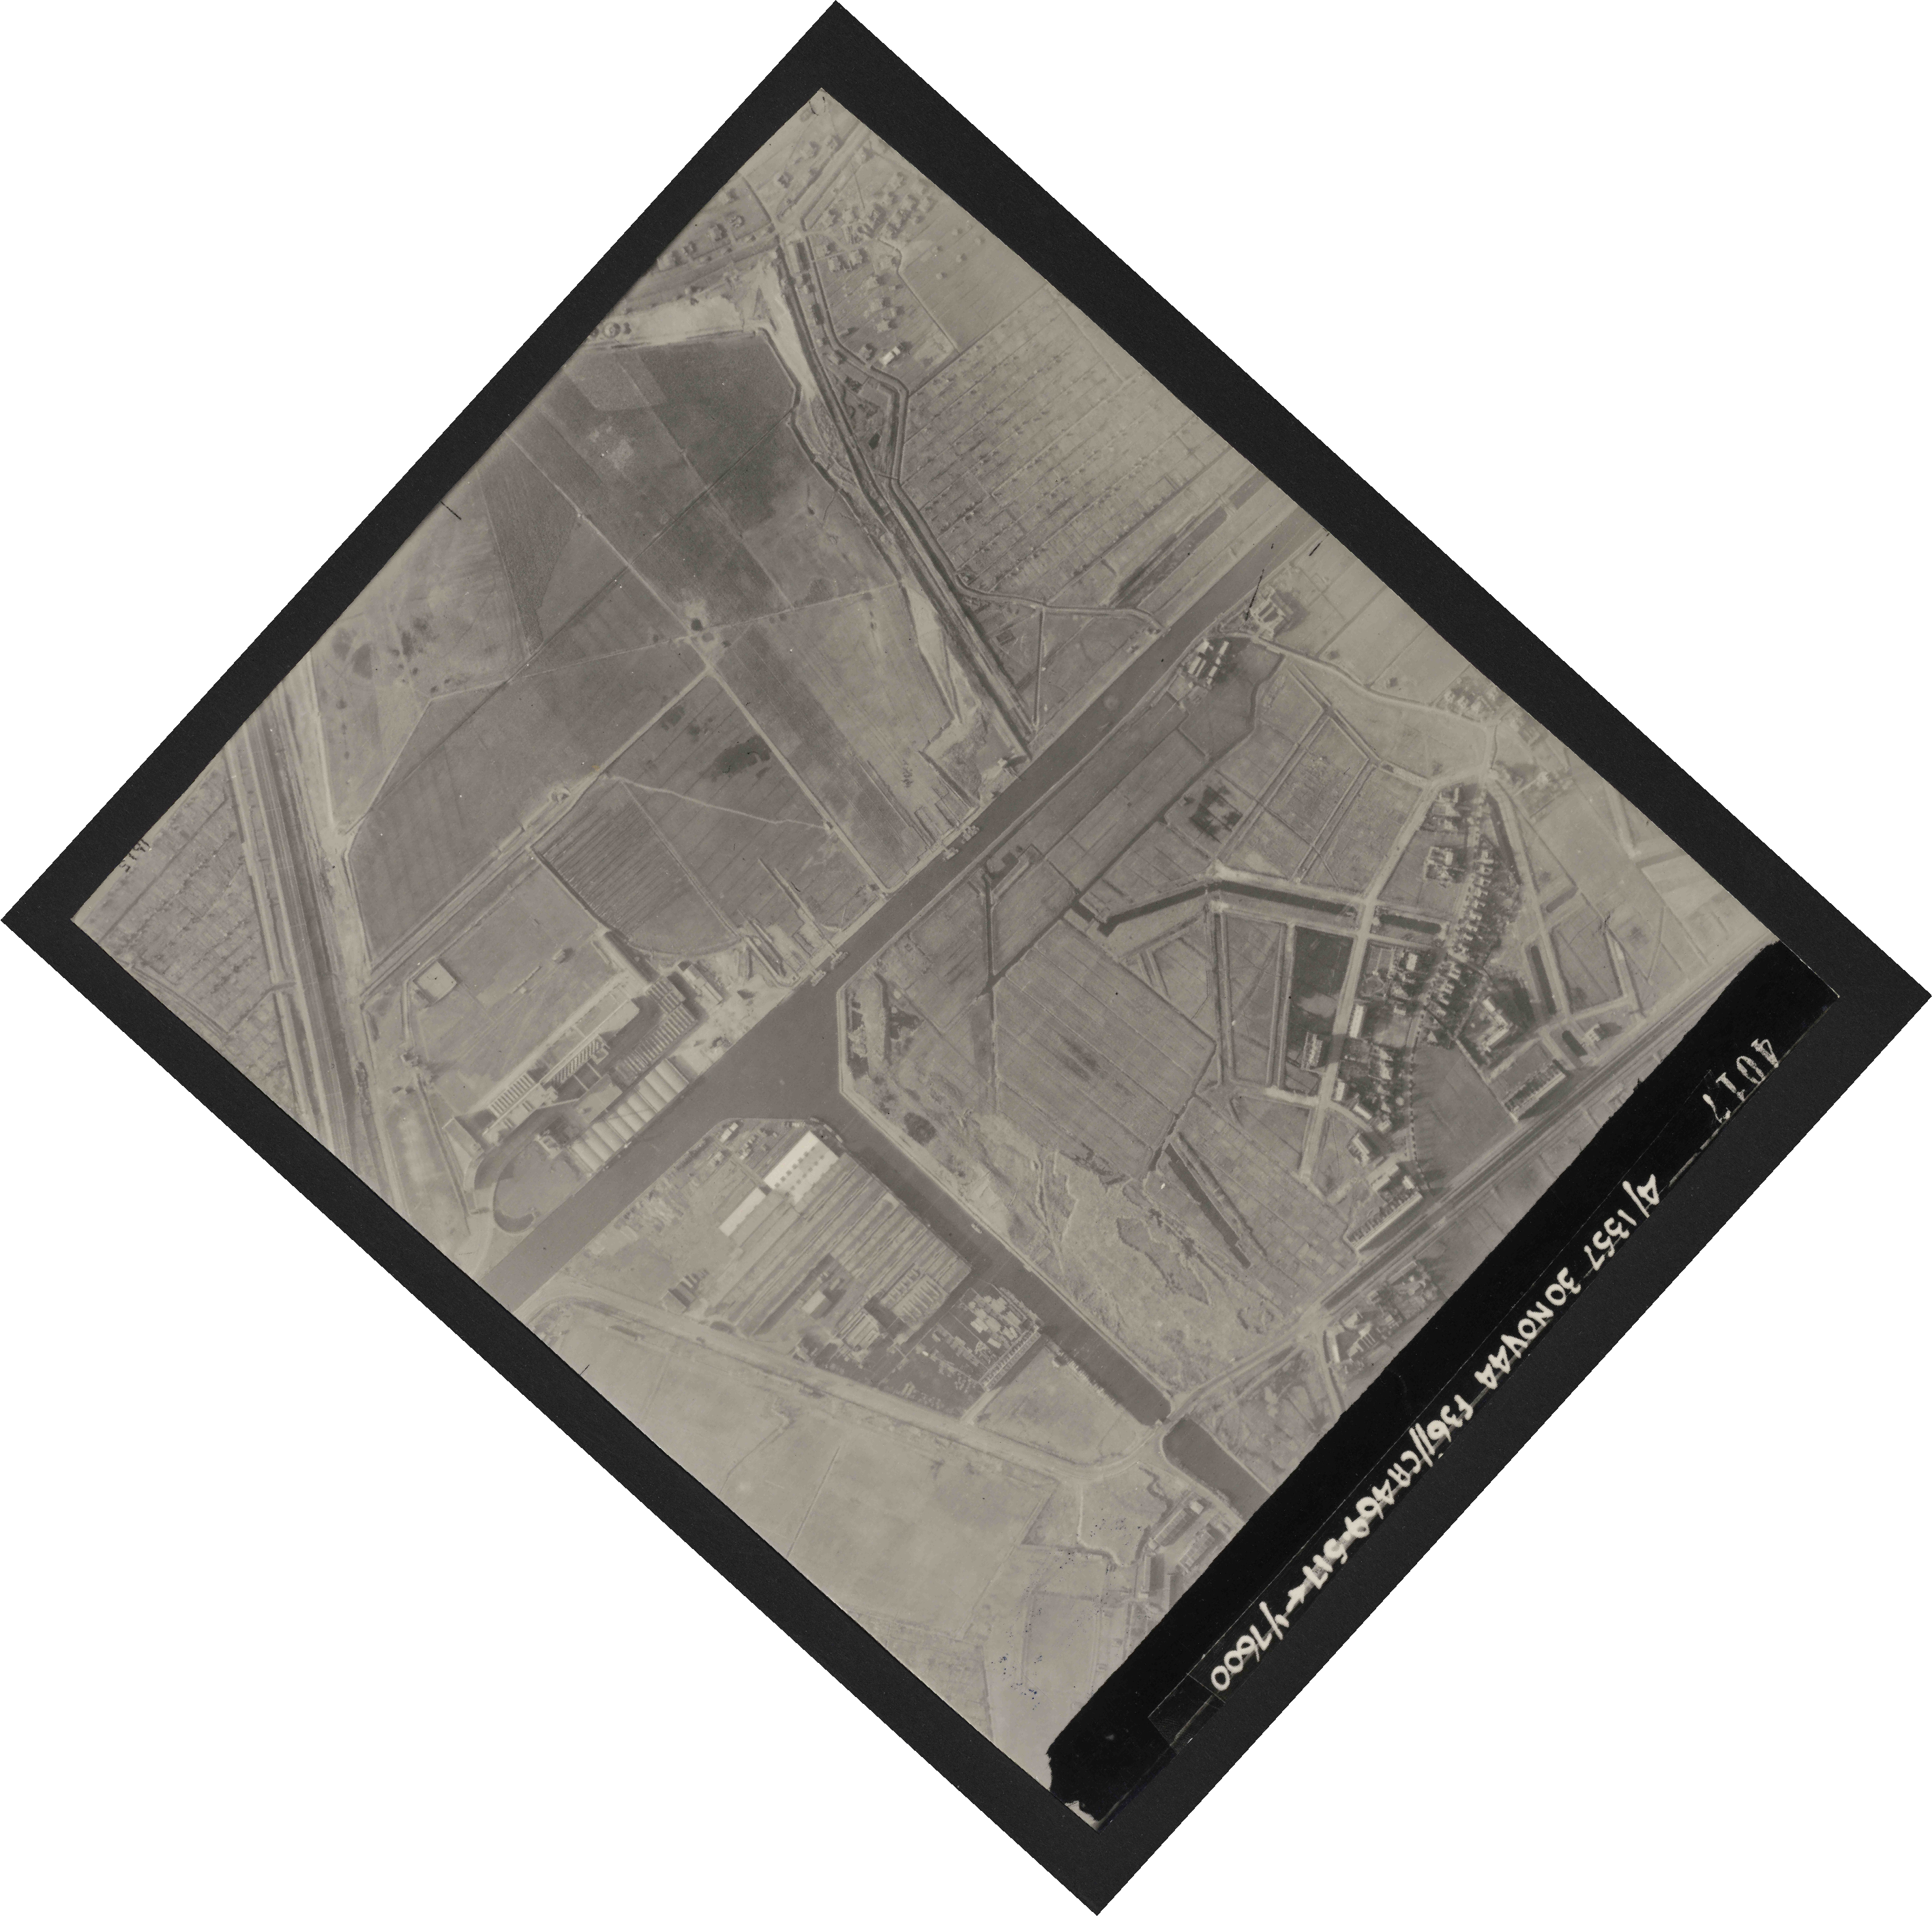 Collection RAF aerial photos 1940-1945 - flight 259, run 02, photo 4017